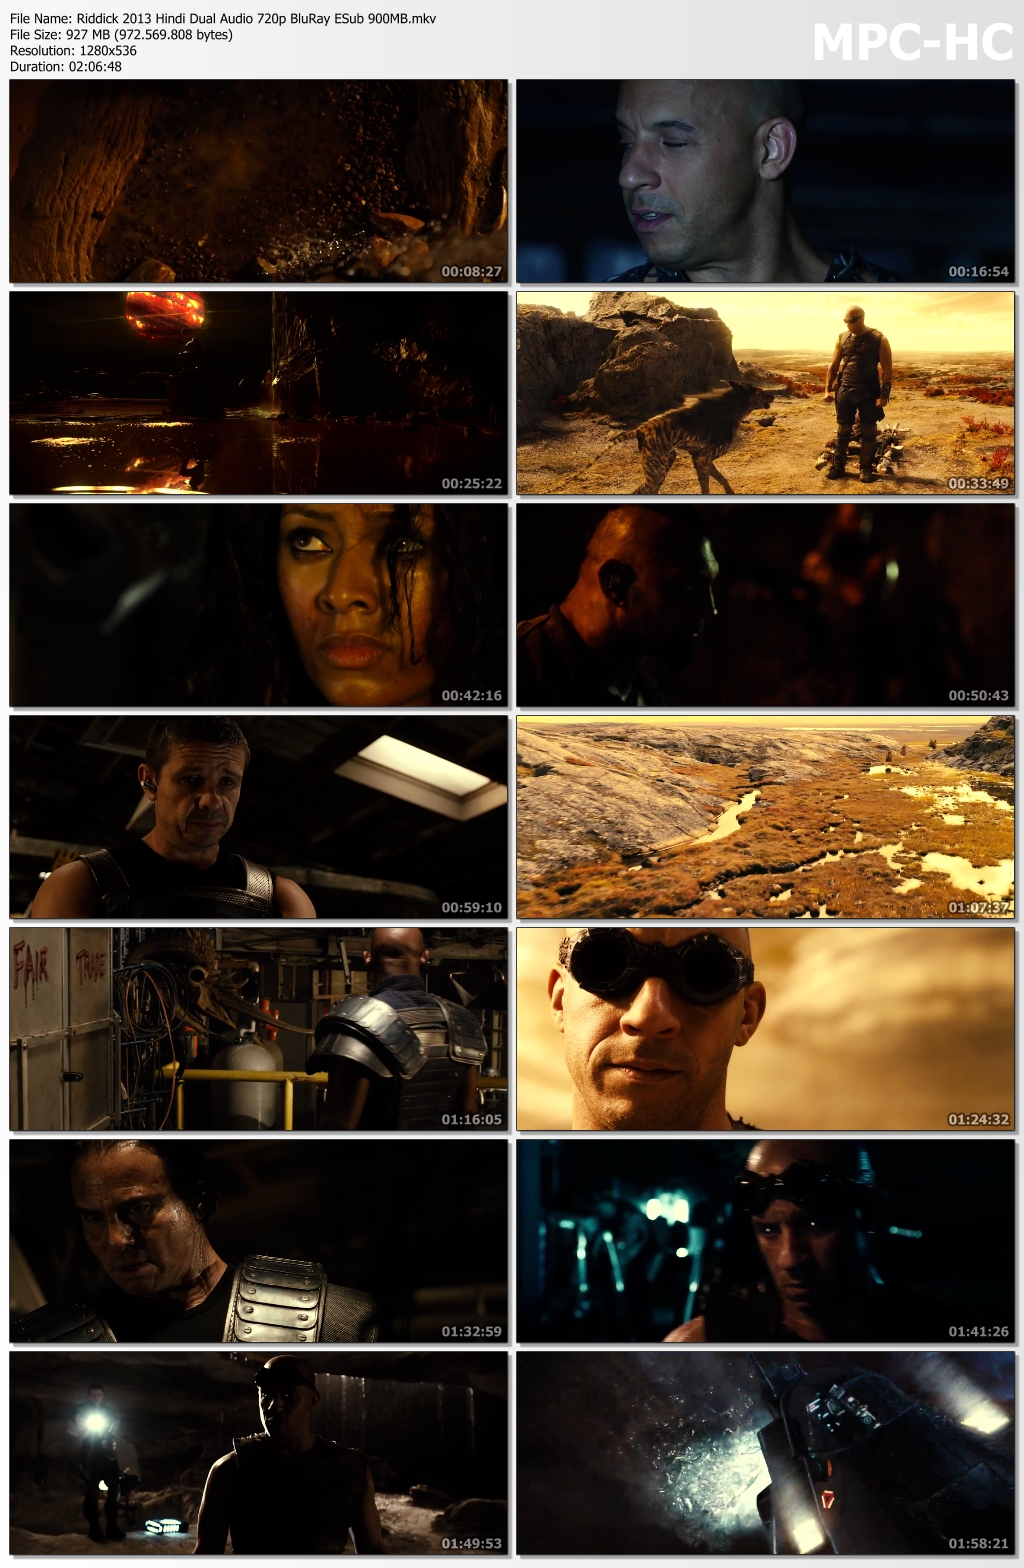 Riddick-2013-Hindi-Dual-Audio-720p-Blu-Ray-ESub-900-MB-mkv-thumbs